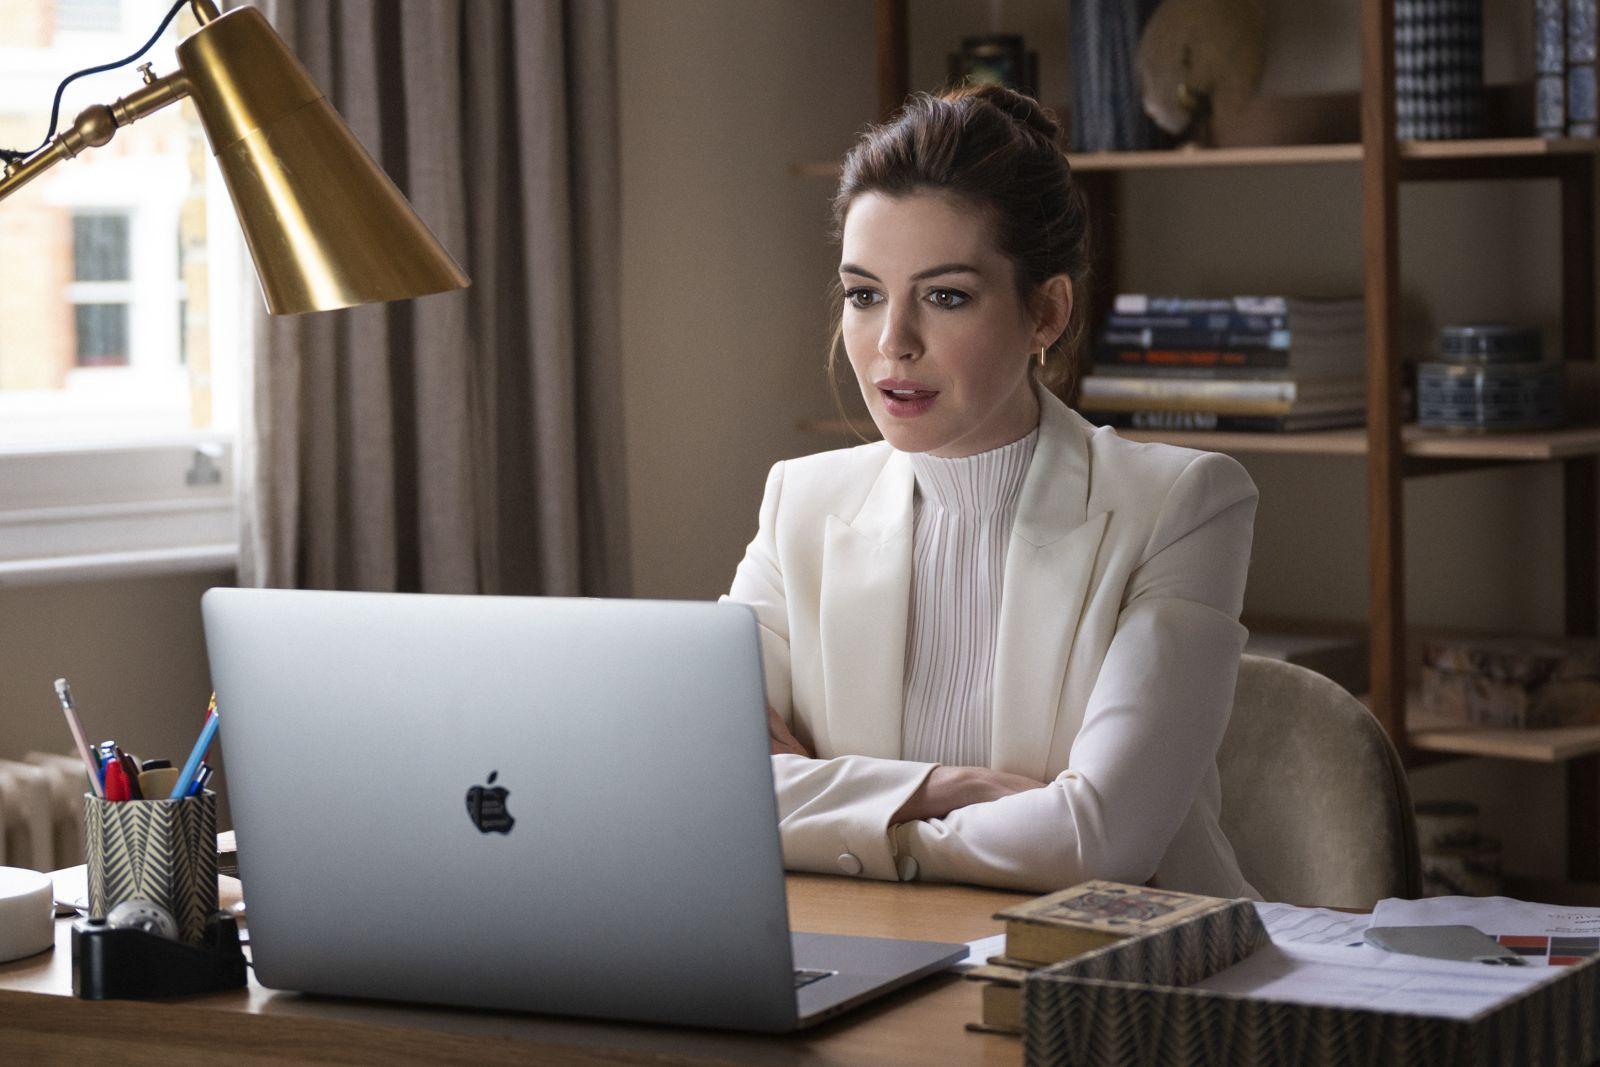 Anne Hathaway (© 2021 Warner Bros. Entertainment Inc. All Rights Reserved. Photo Credit: Susie Allnutt)